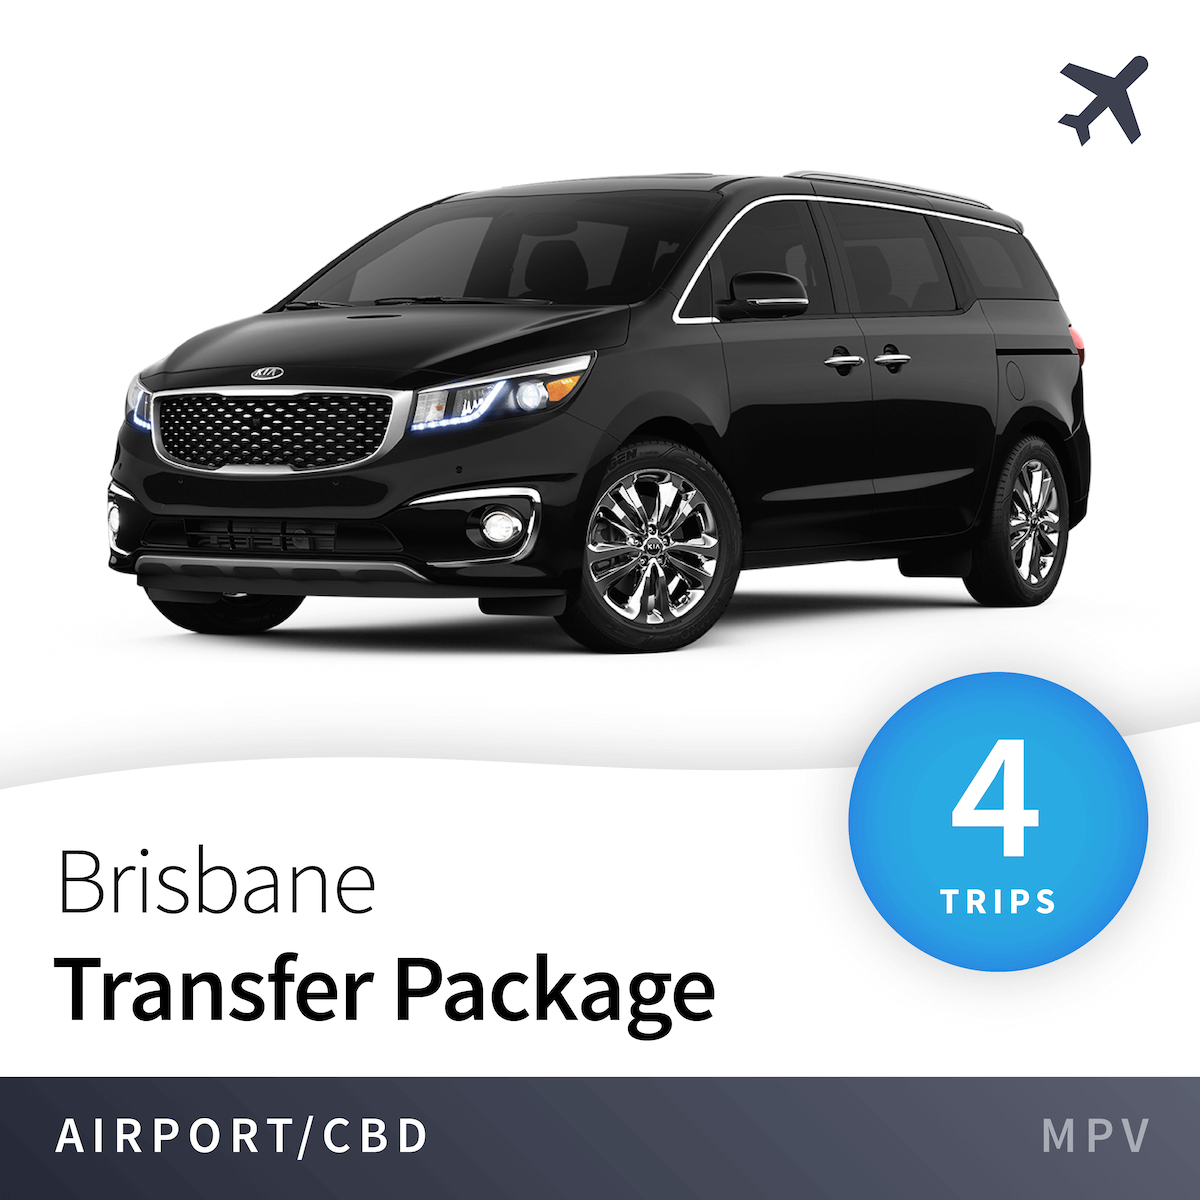 Brisbane Airport Transfer Package - MPV (4 Trips) 6